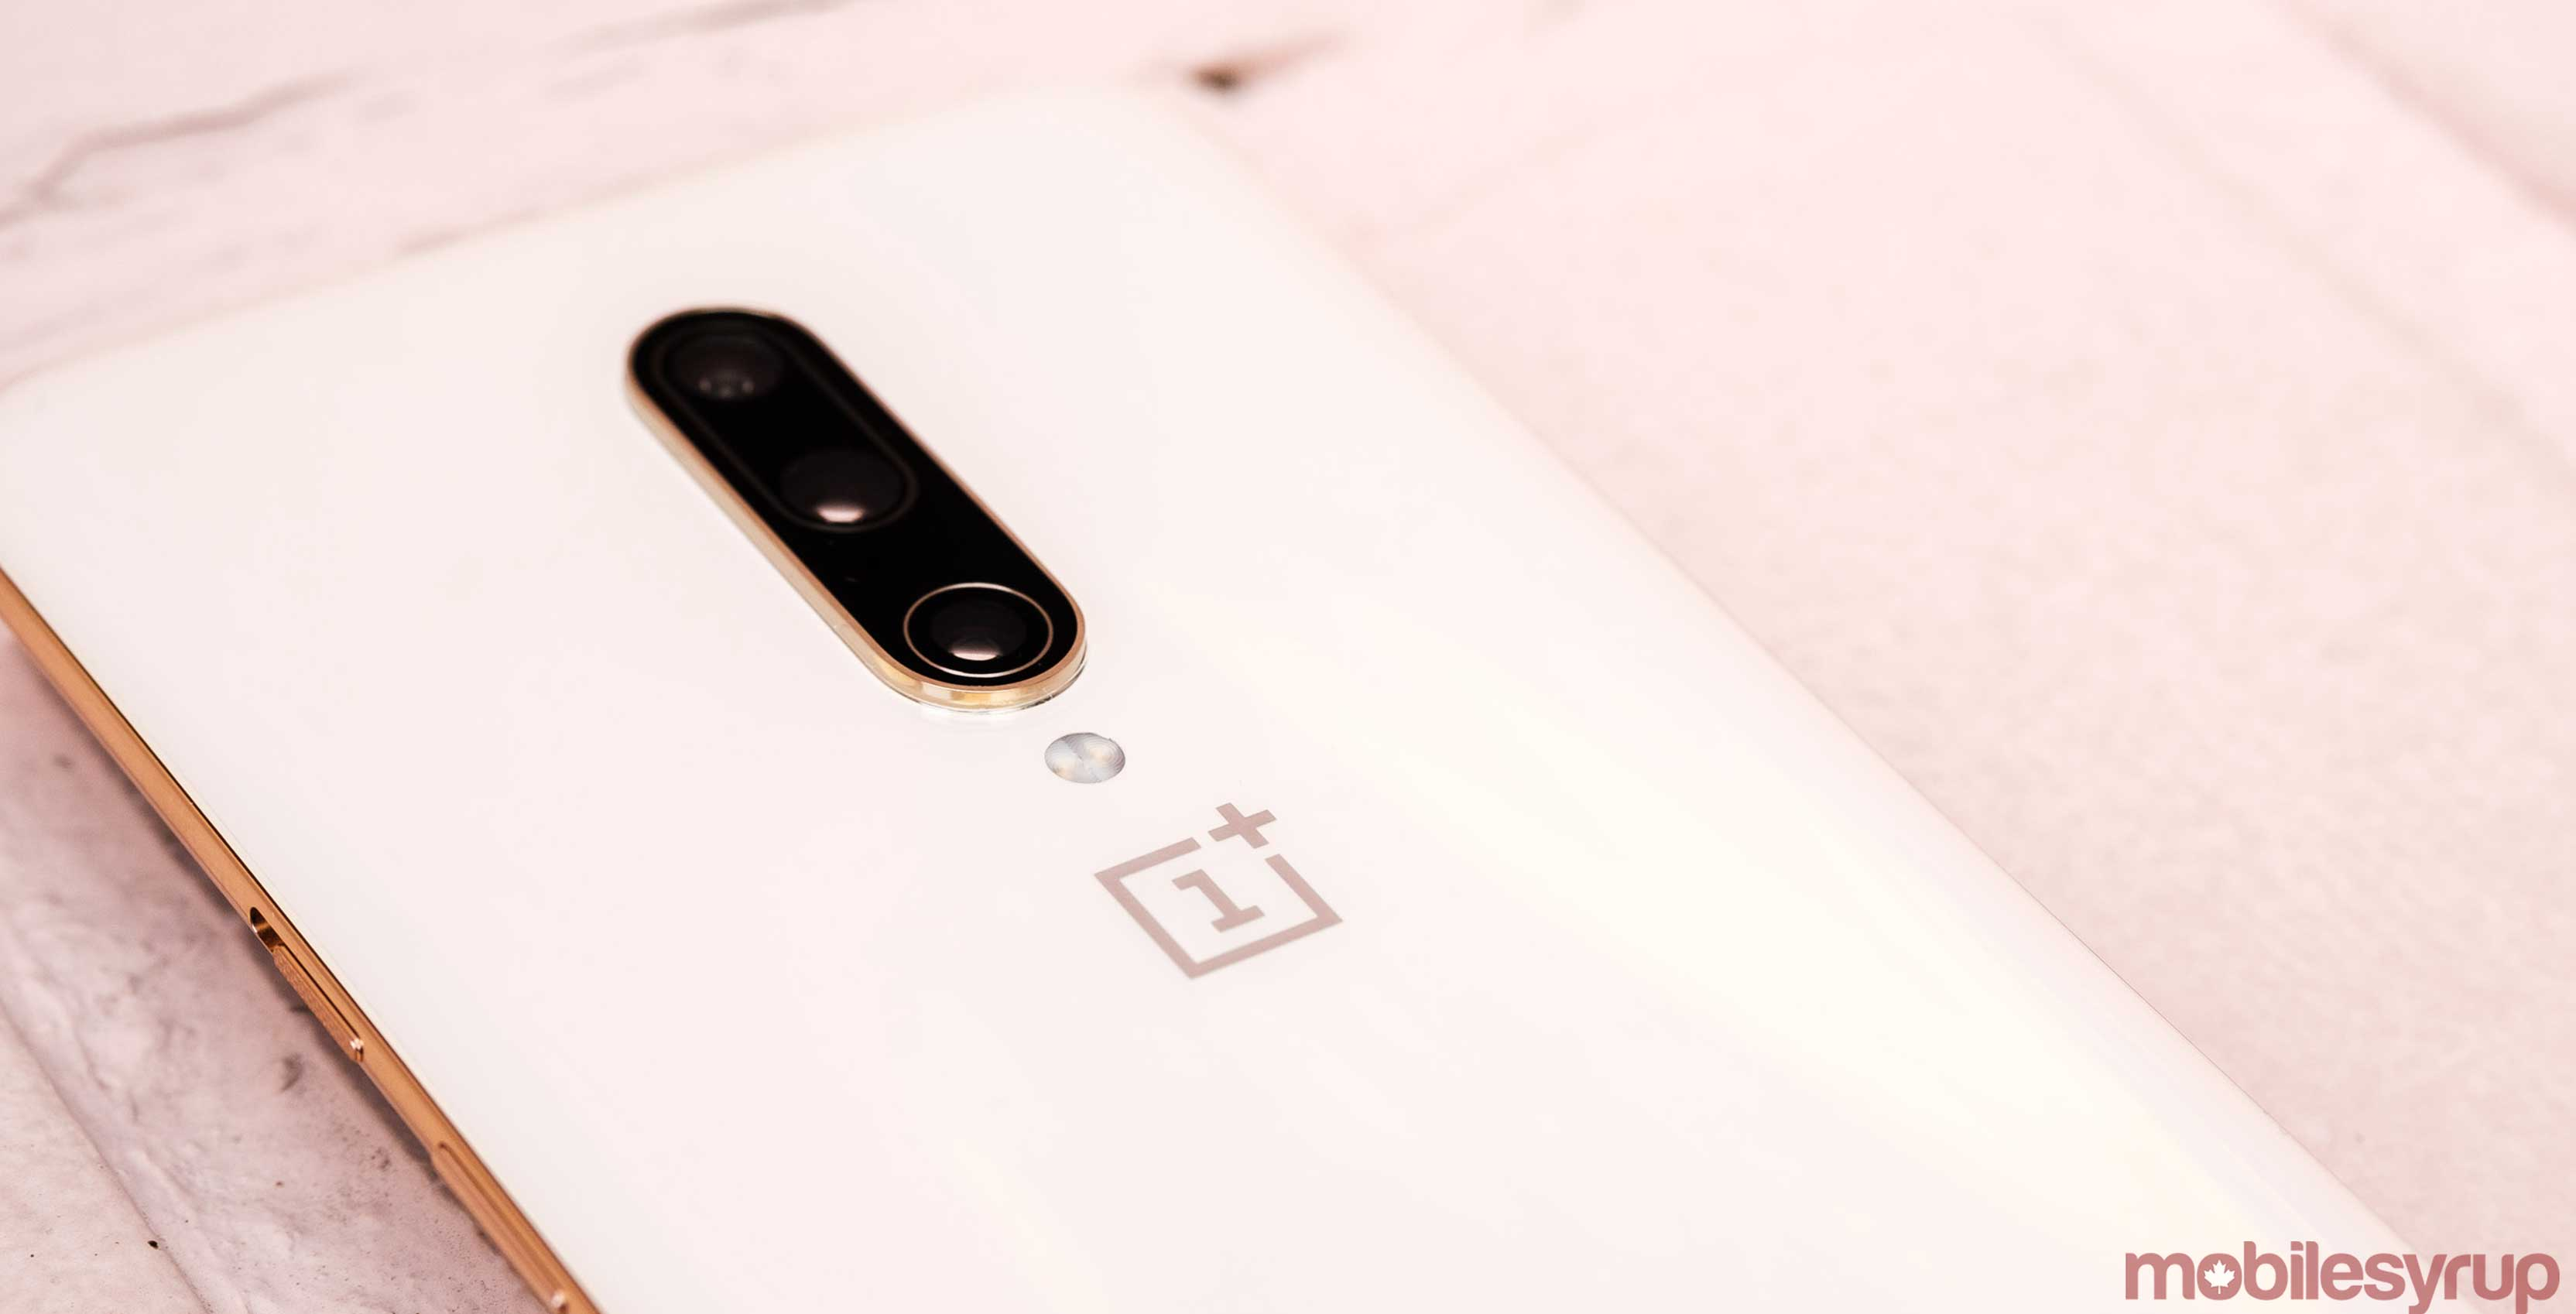 OnePlus adds Fnatic Mode and DC dimming to the OnePlus 6 and 6T